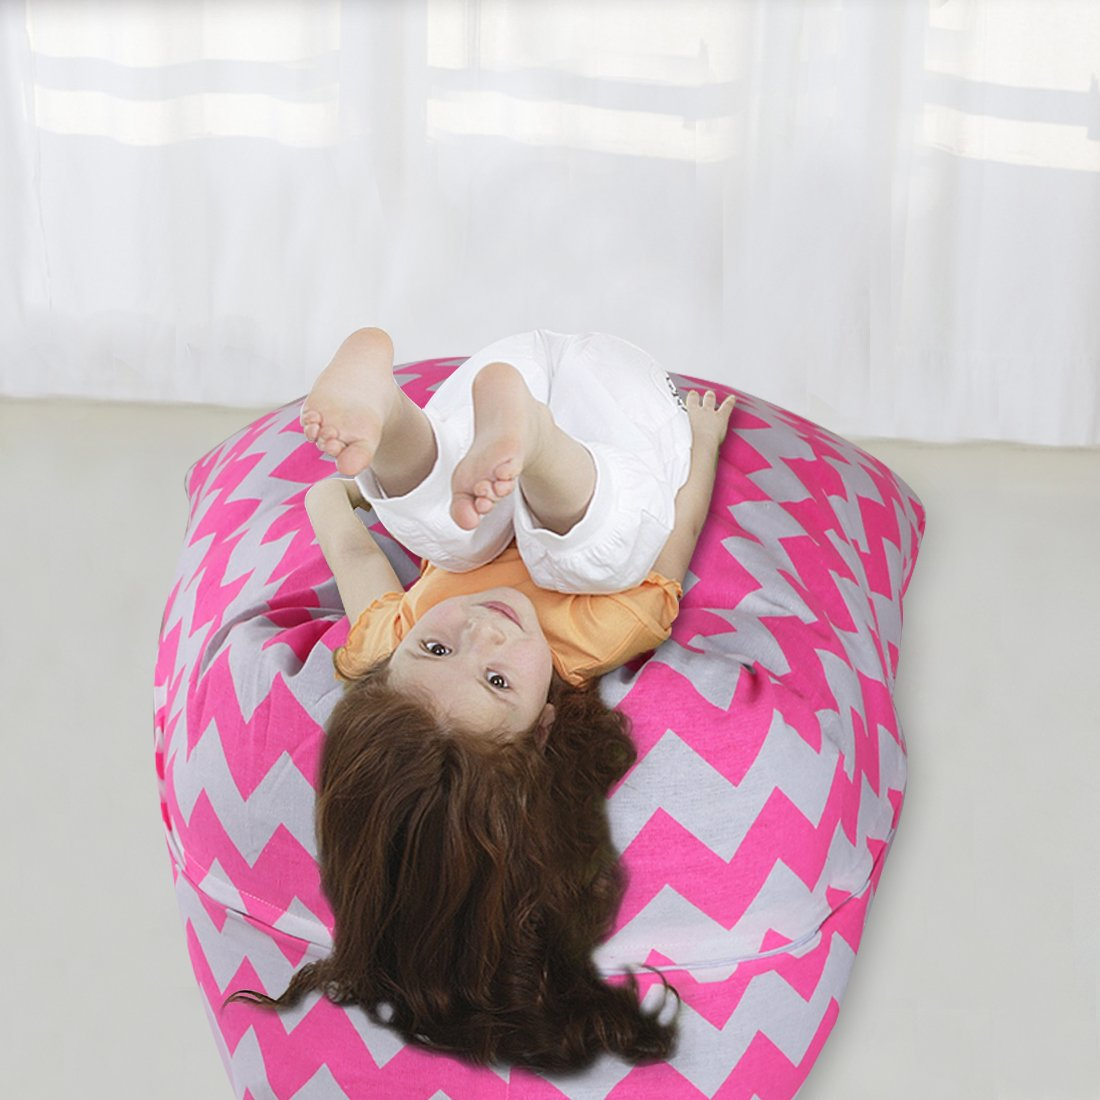 YellowPin 2pc Stuffed Animal Bean Bag Storage Lounger Chair Round Ottoman Value Set by YellowPin (Image #3)